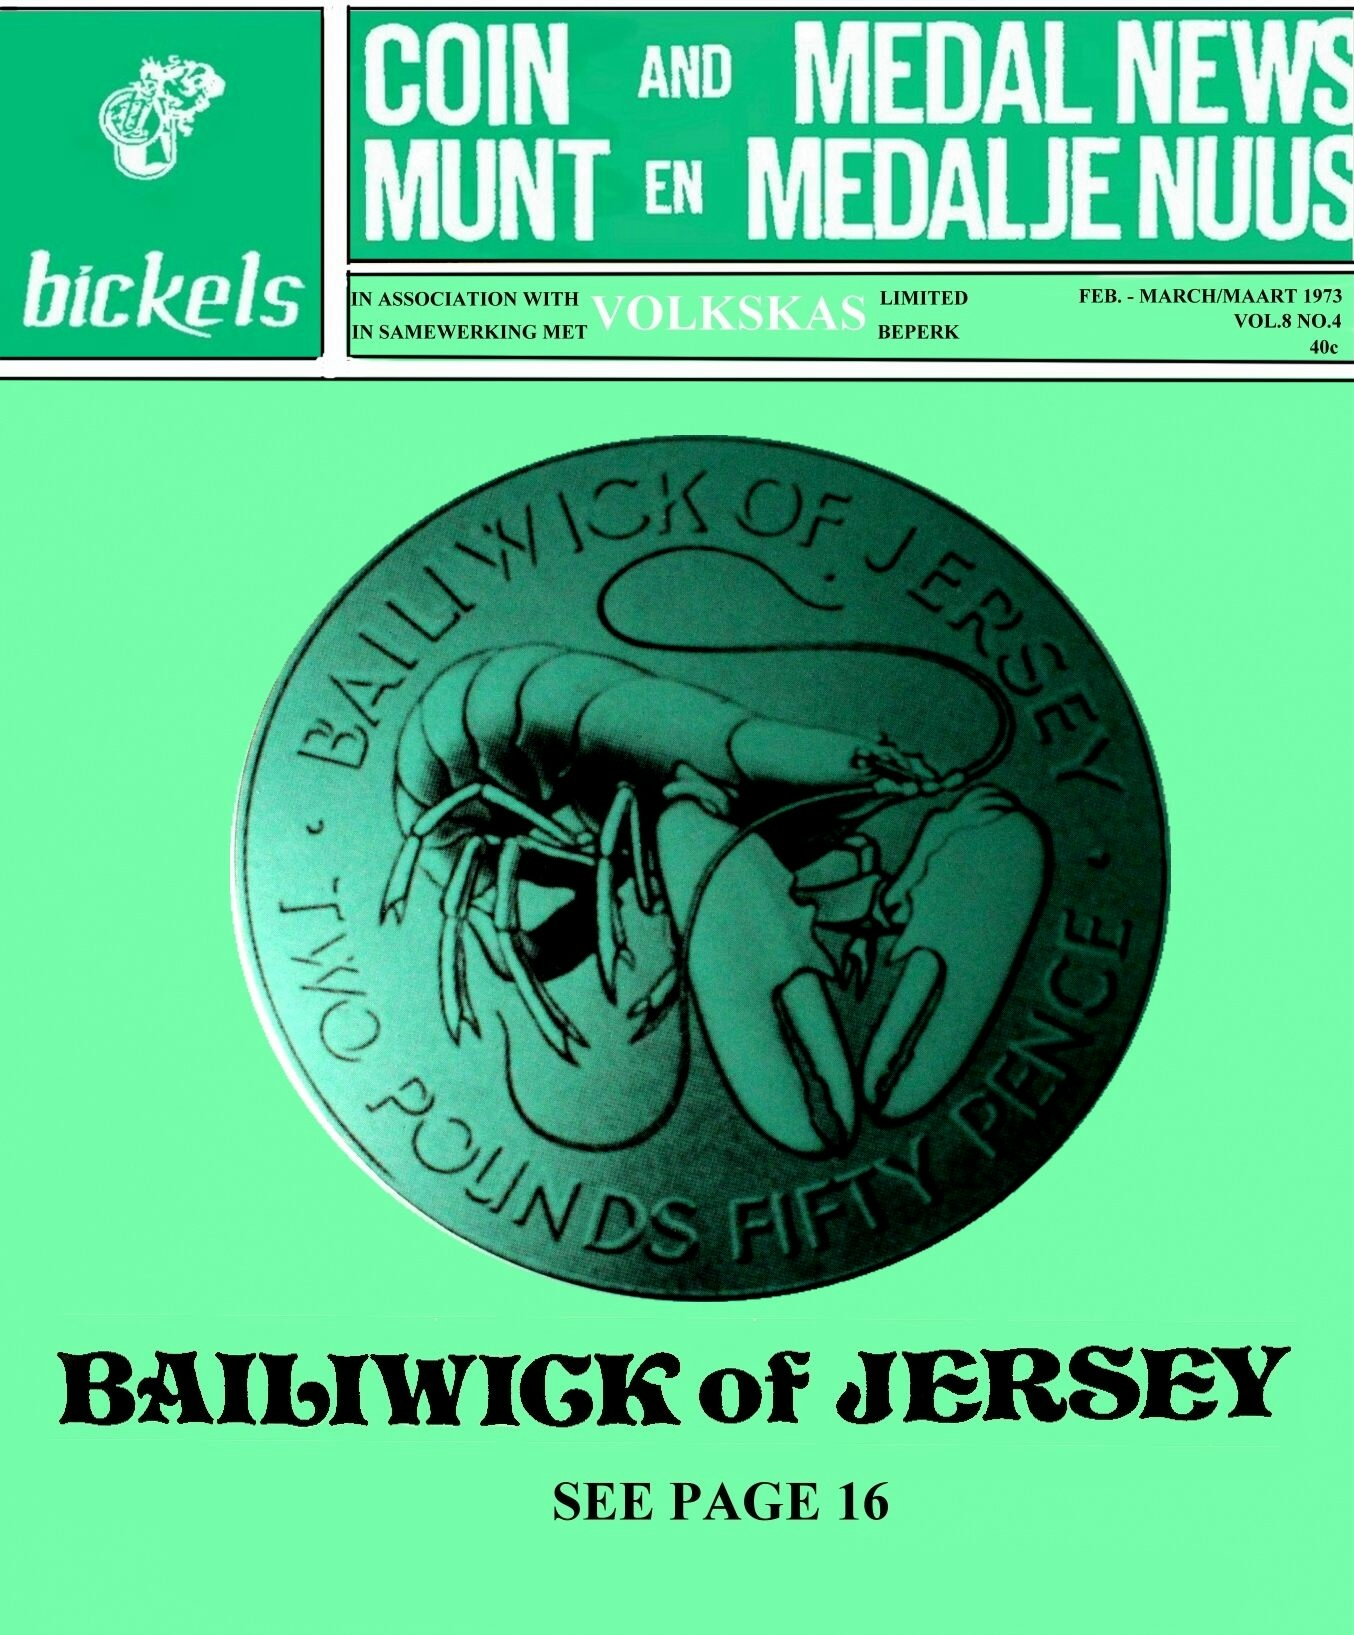 Bickels Coin & Medal News February March 1973 Vol 8 No 4